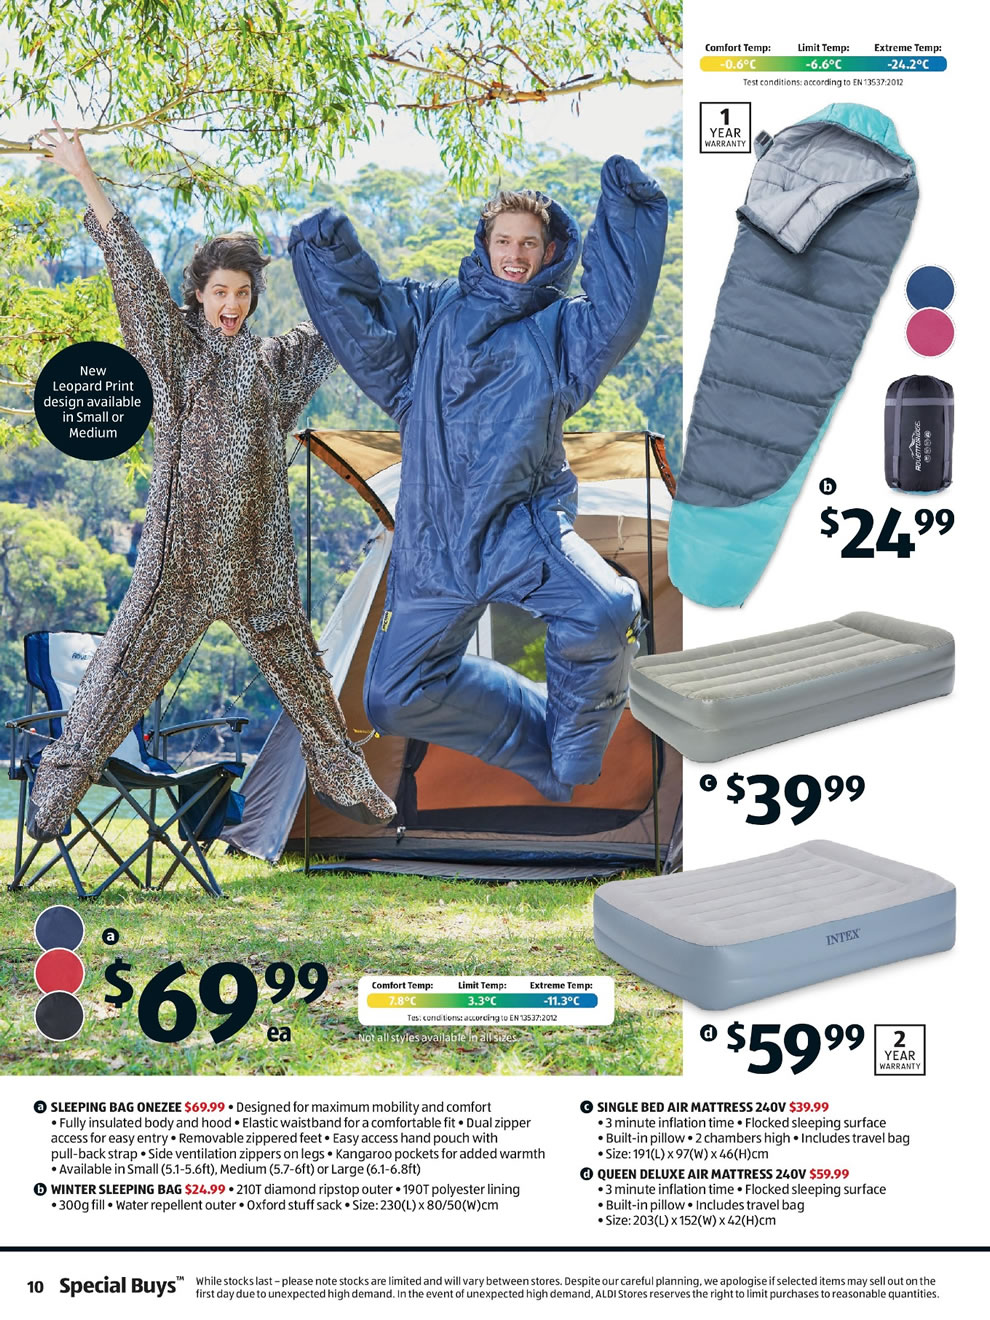 Aldi Catalogue: 14th of March to 20th of March 2018 - Page 10